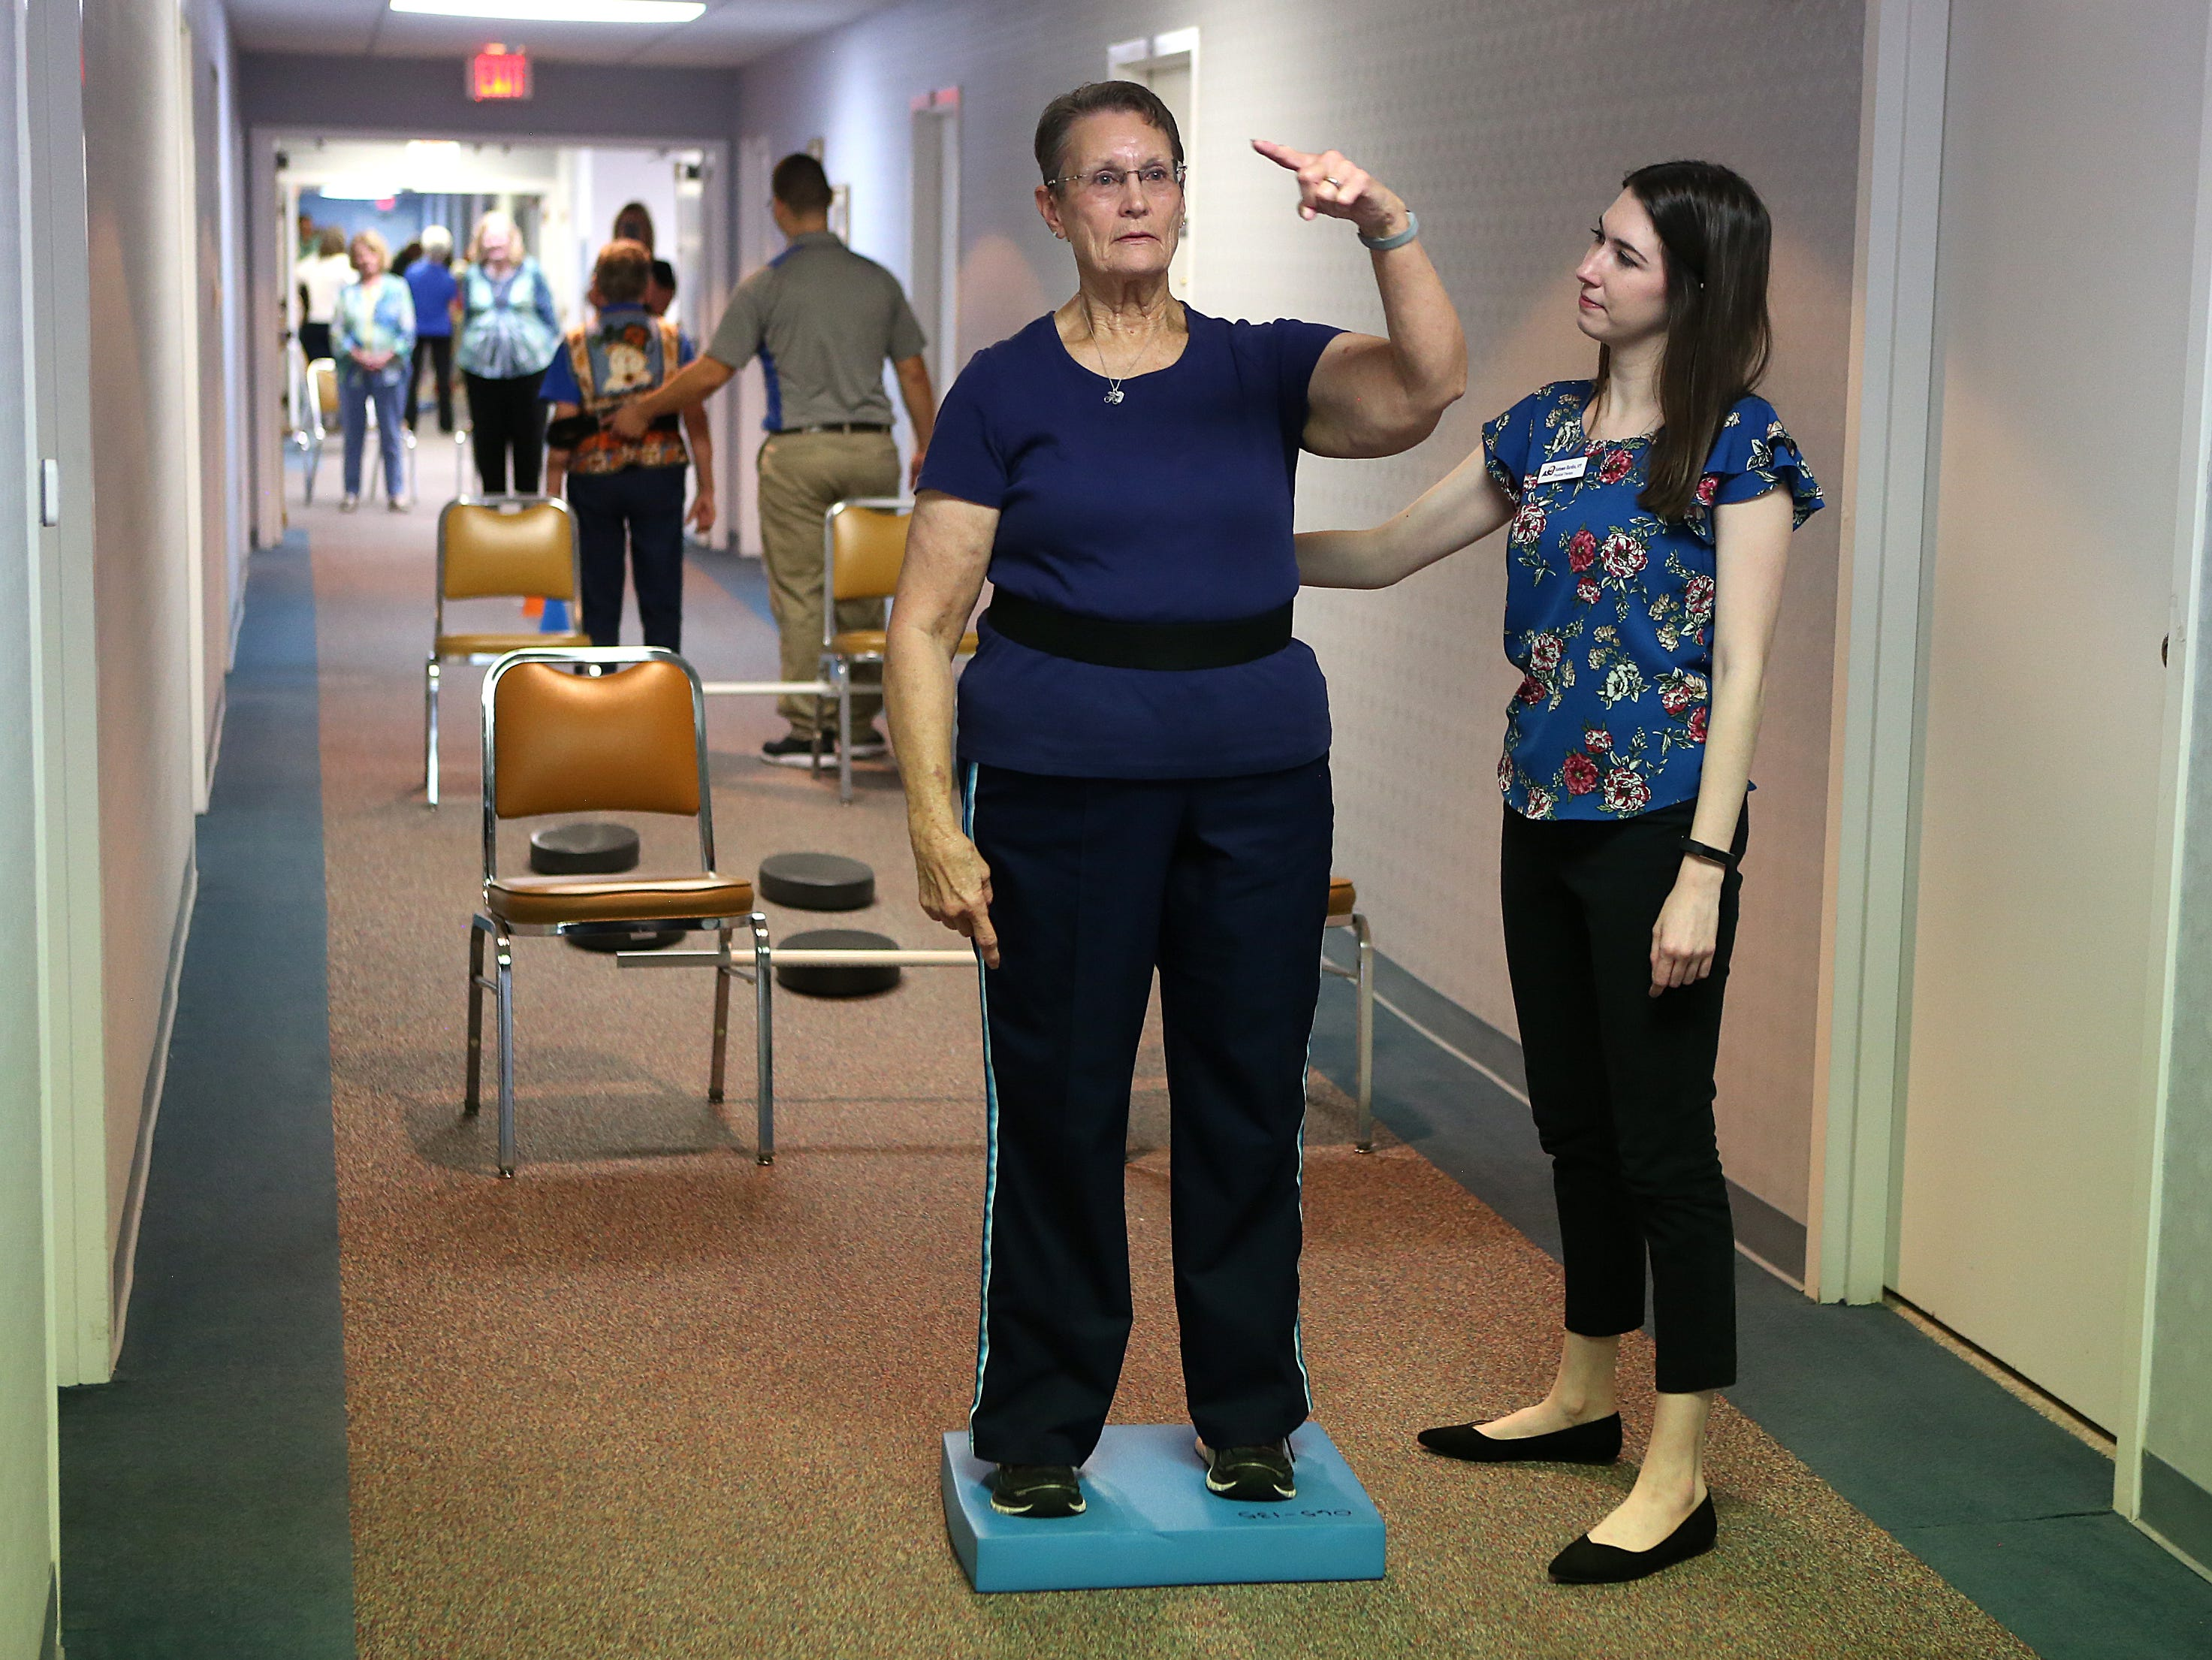 Autumn Hardin, a physical therapy student at Angelo State University, helps resident Francis Evans who participates in an activity designed by ASU physical therapy students during a Balance and Fall Risk Reduction Program for seniors at Baptist Retirement Community Monday, Oct. 1, 2018.